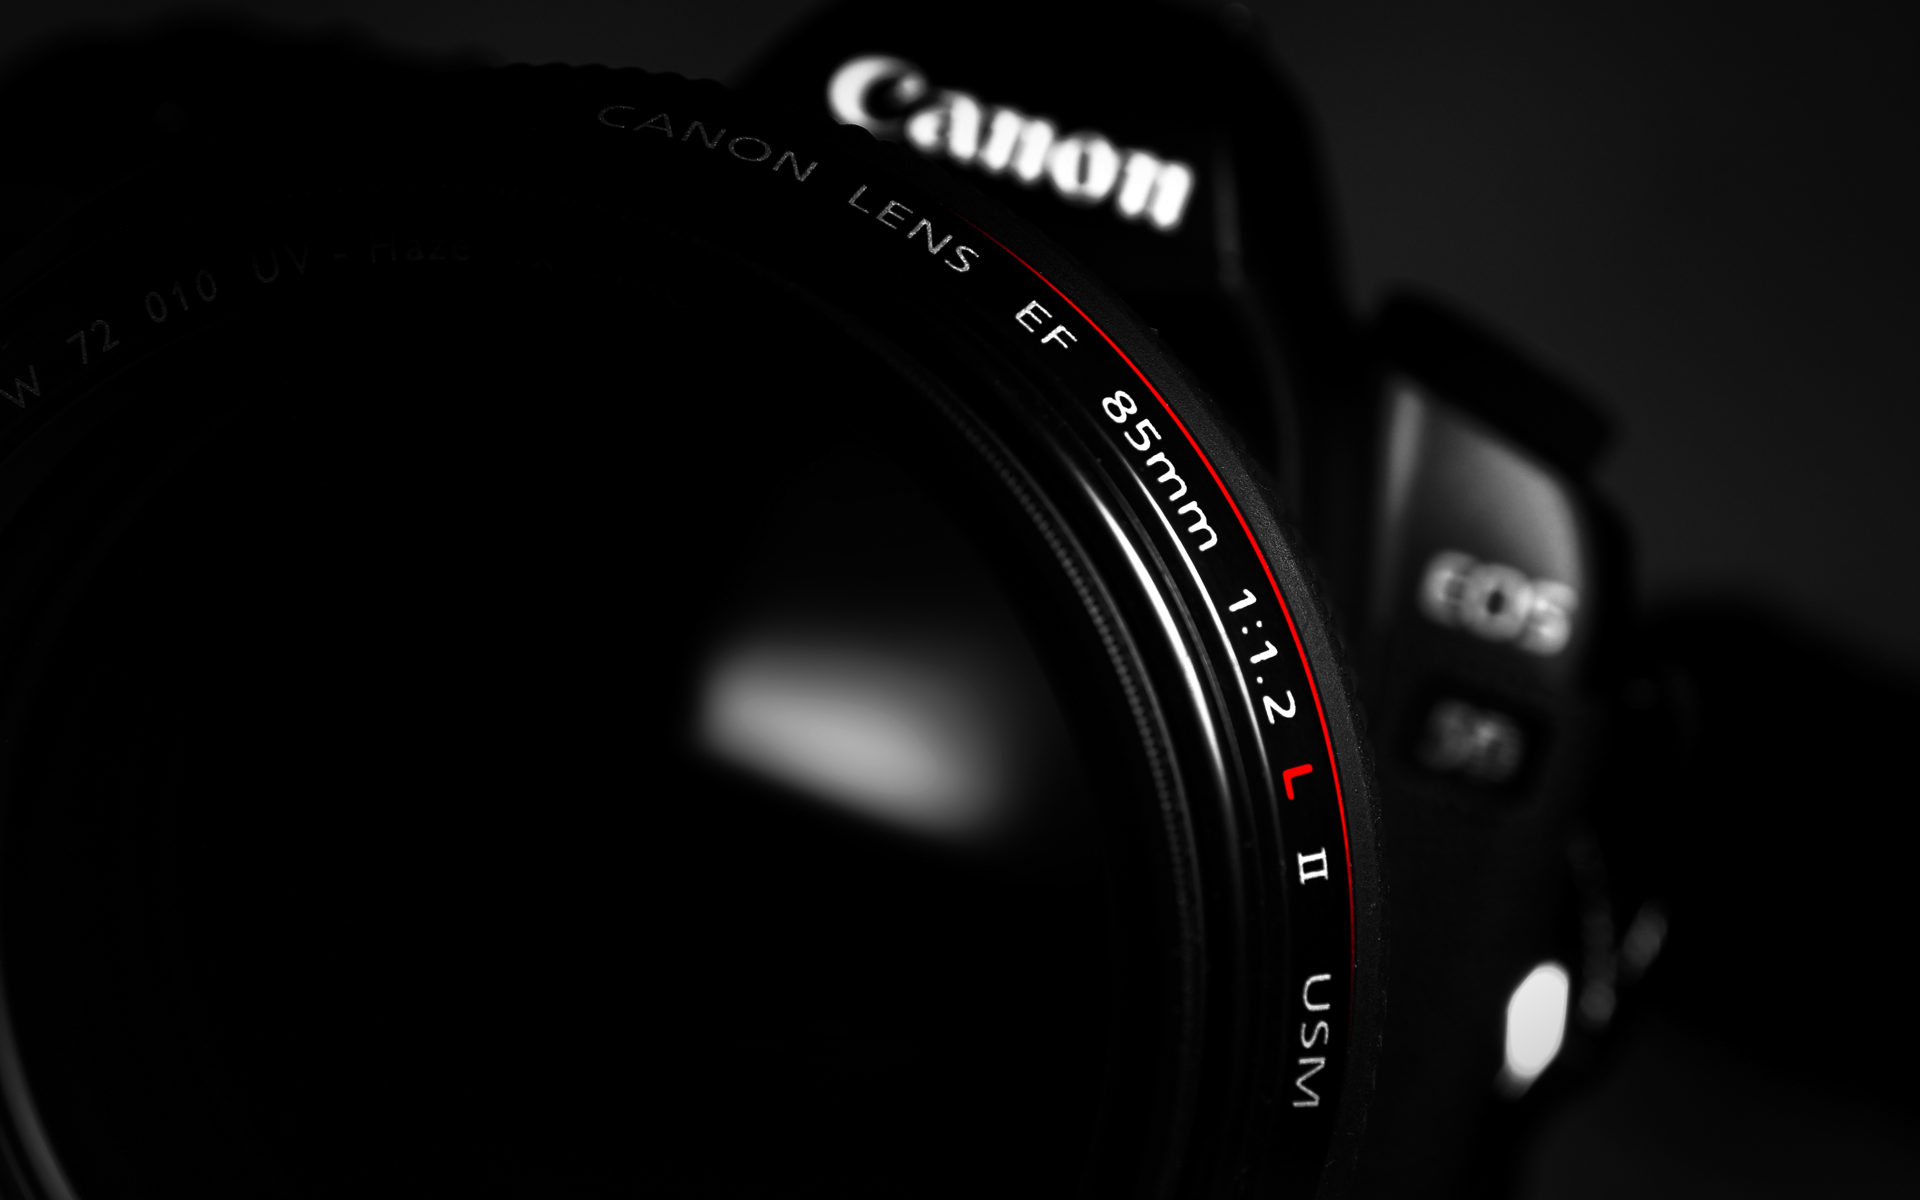 1920x1200 Cameras Canon wallpaper